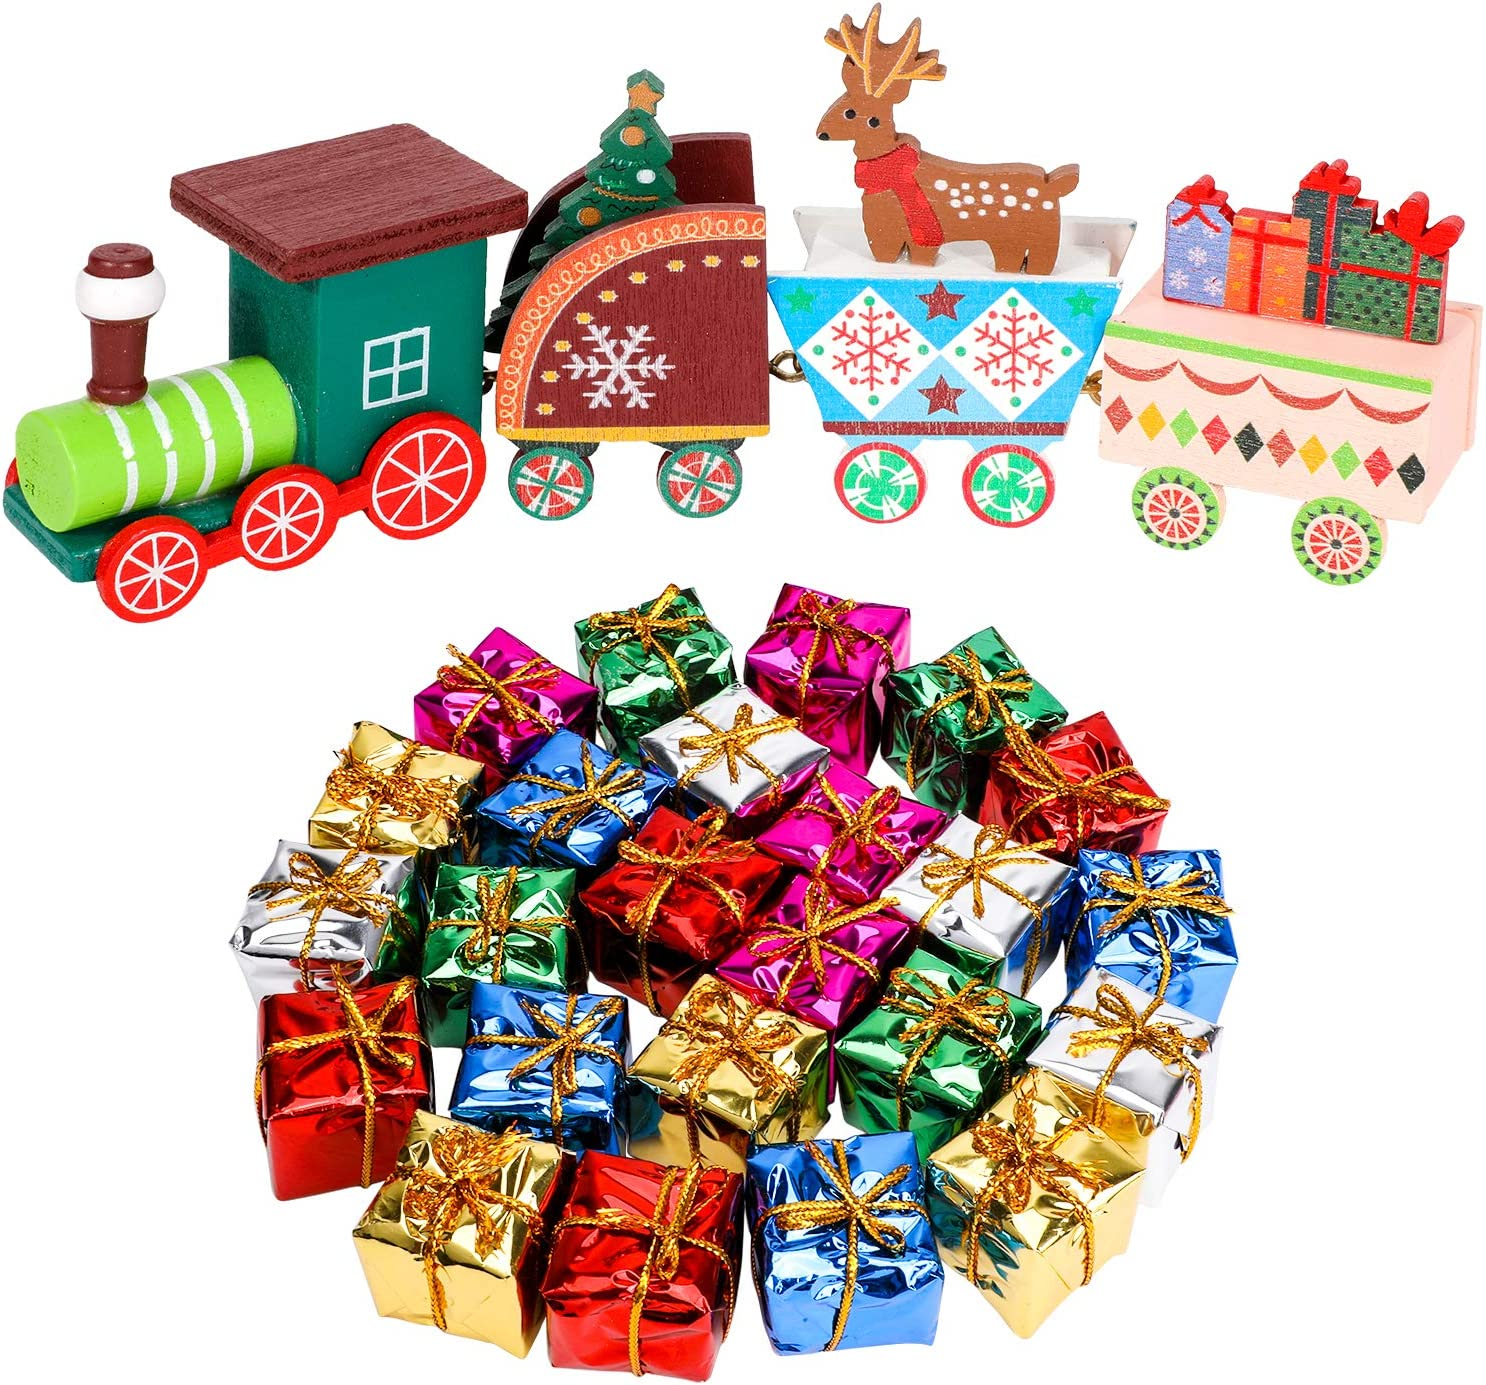 Konsait 25 Pack Christmas Tree Small Gift Boxes Hanging Decorations, Christmas Train Figurine Decor Mini Holiday Train Set,Christmas Miniatures for Crafts,Dollhouse Christmas Decorations Ornaments